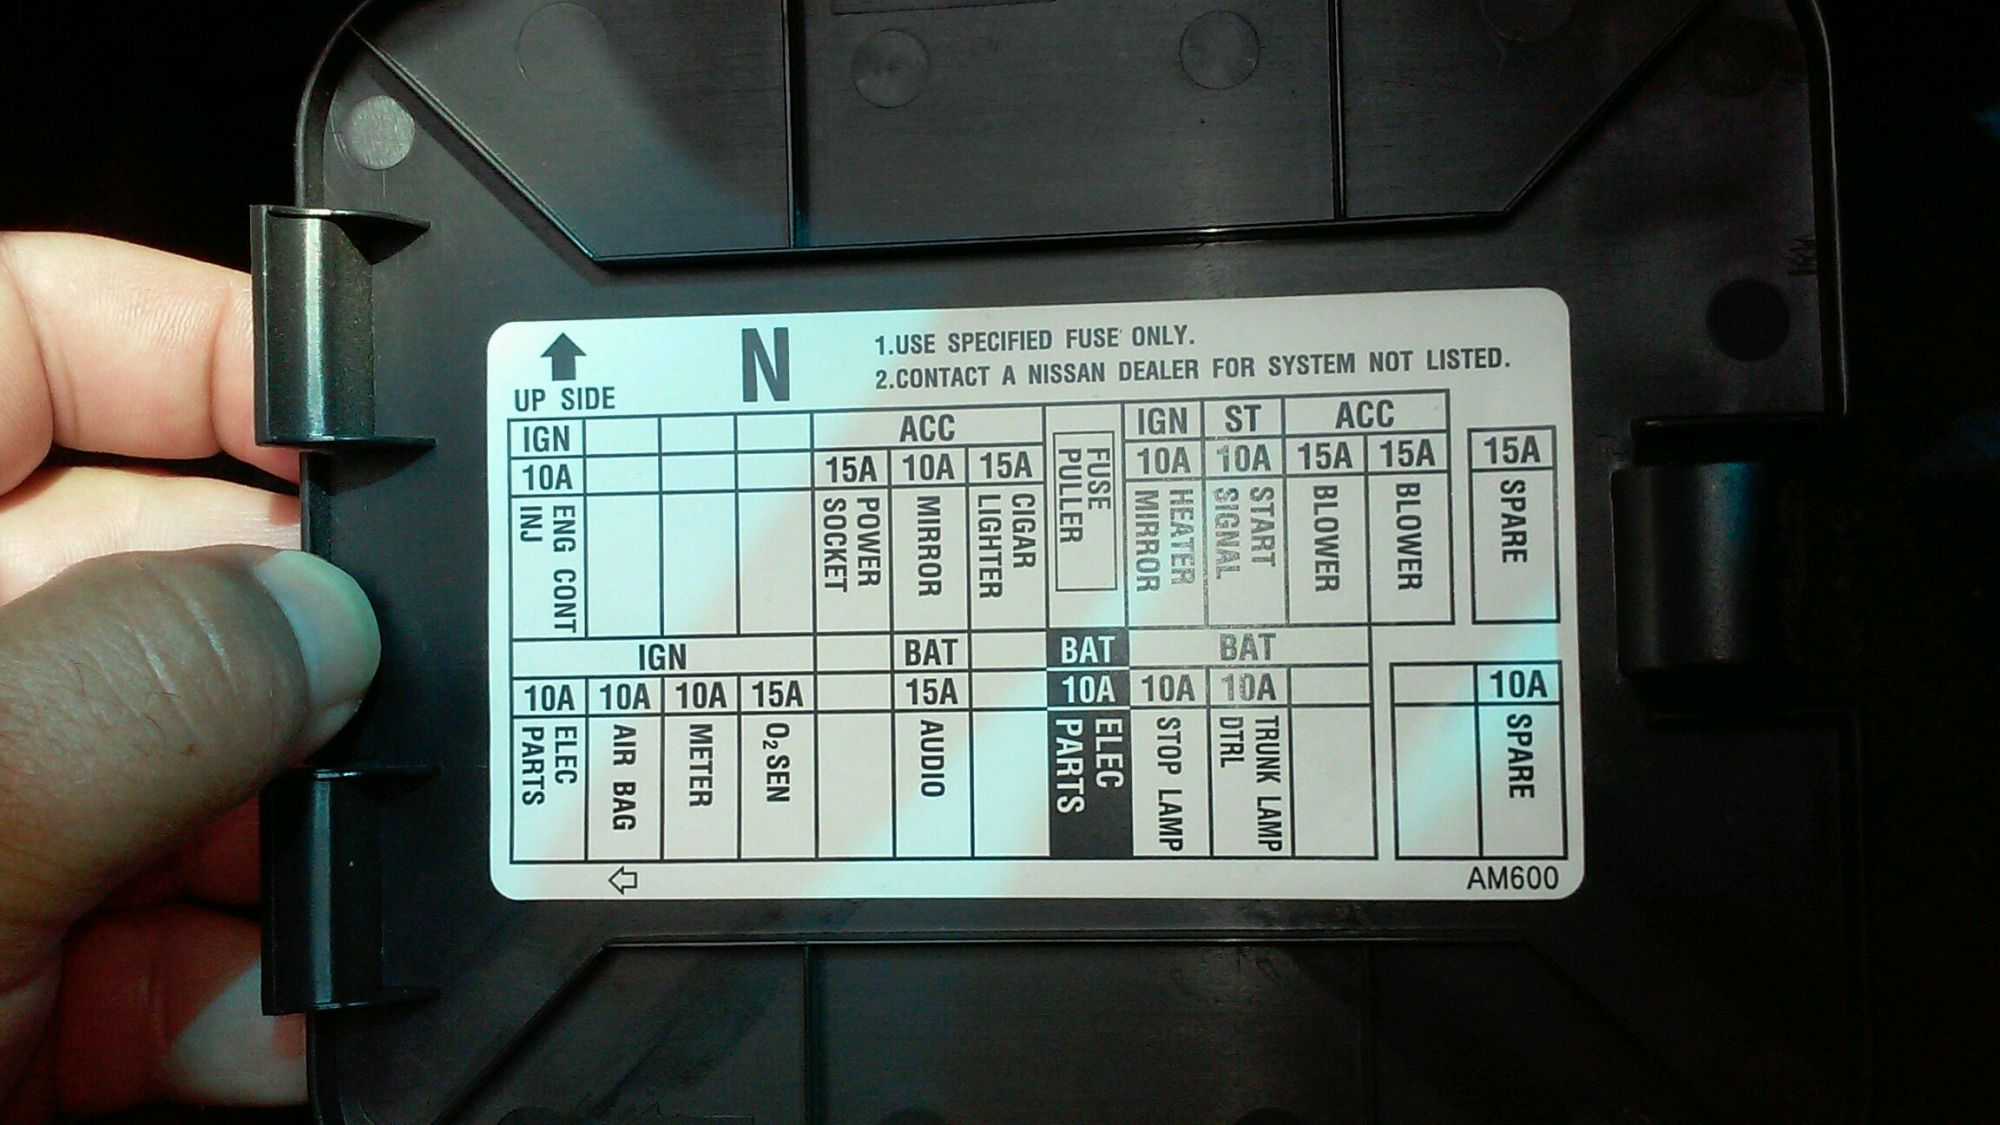 hight resolution of 2008 infiniti g35 fuse box diagram 34 wiring diagram